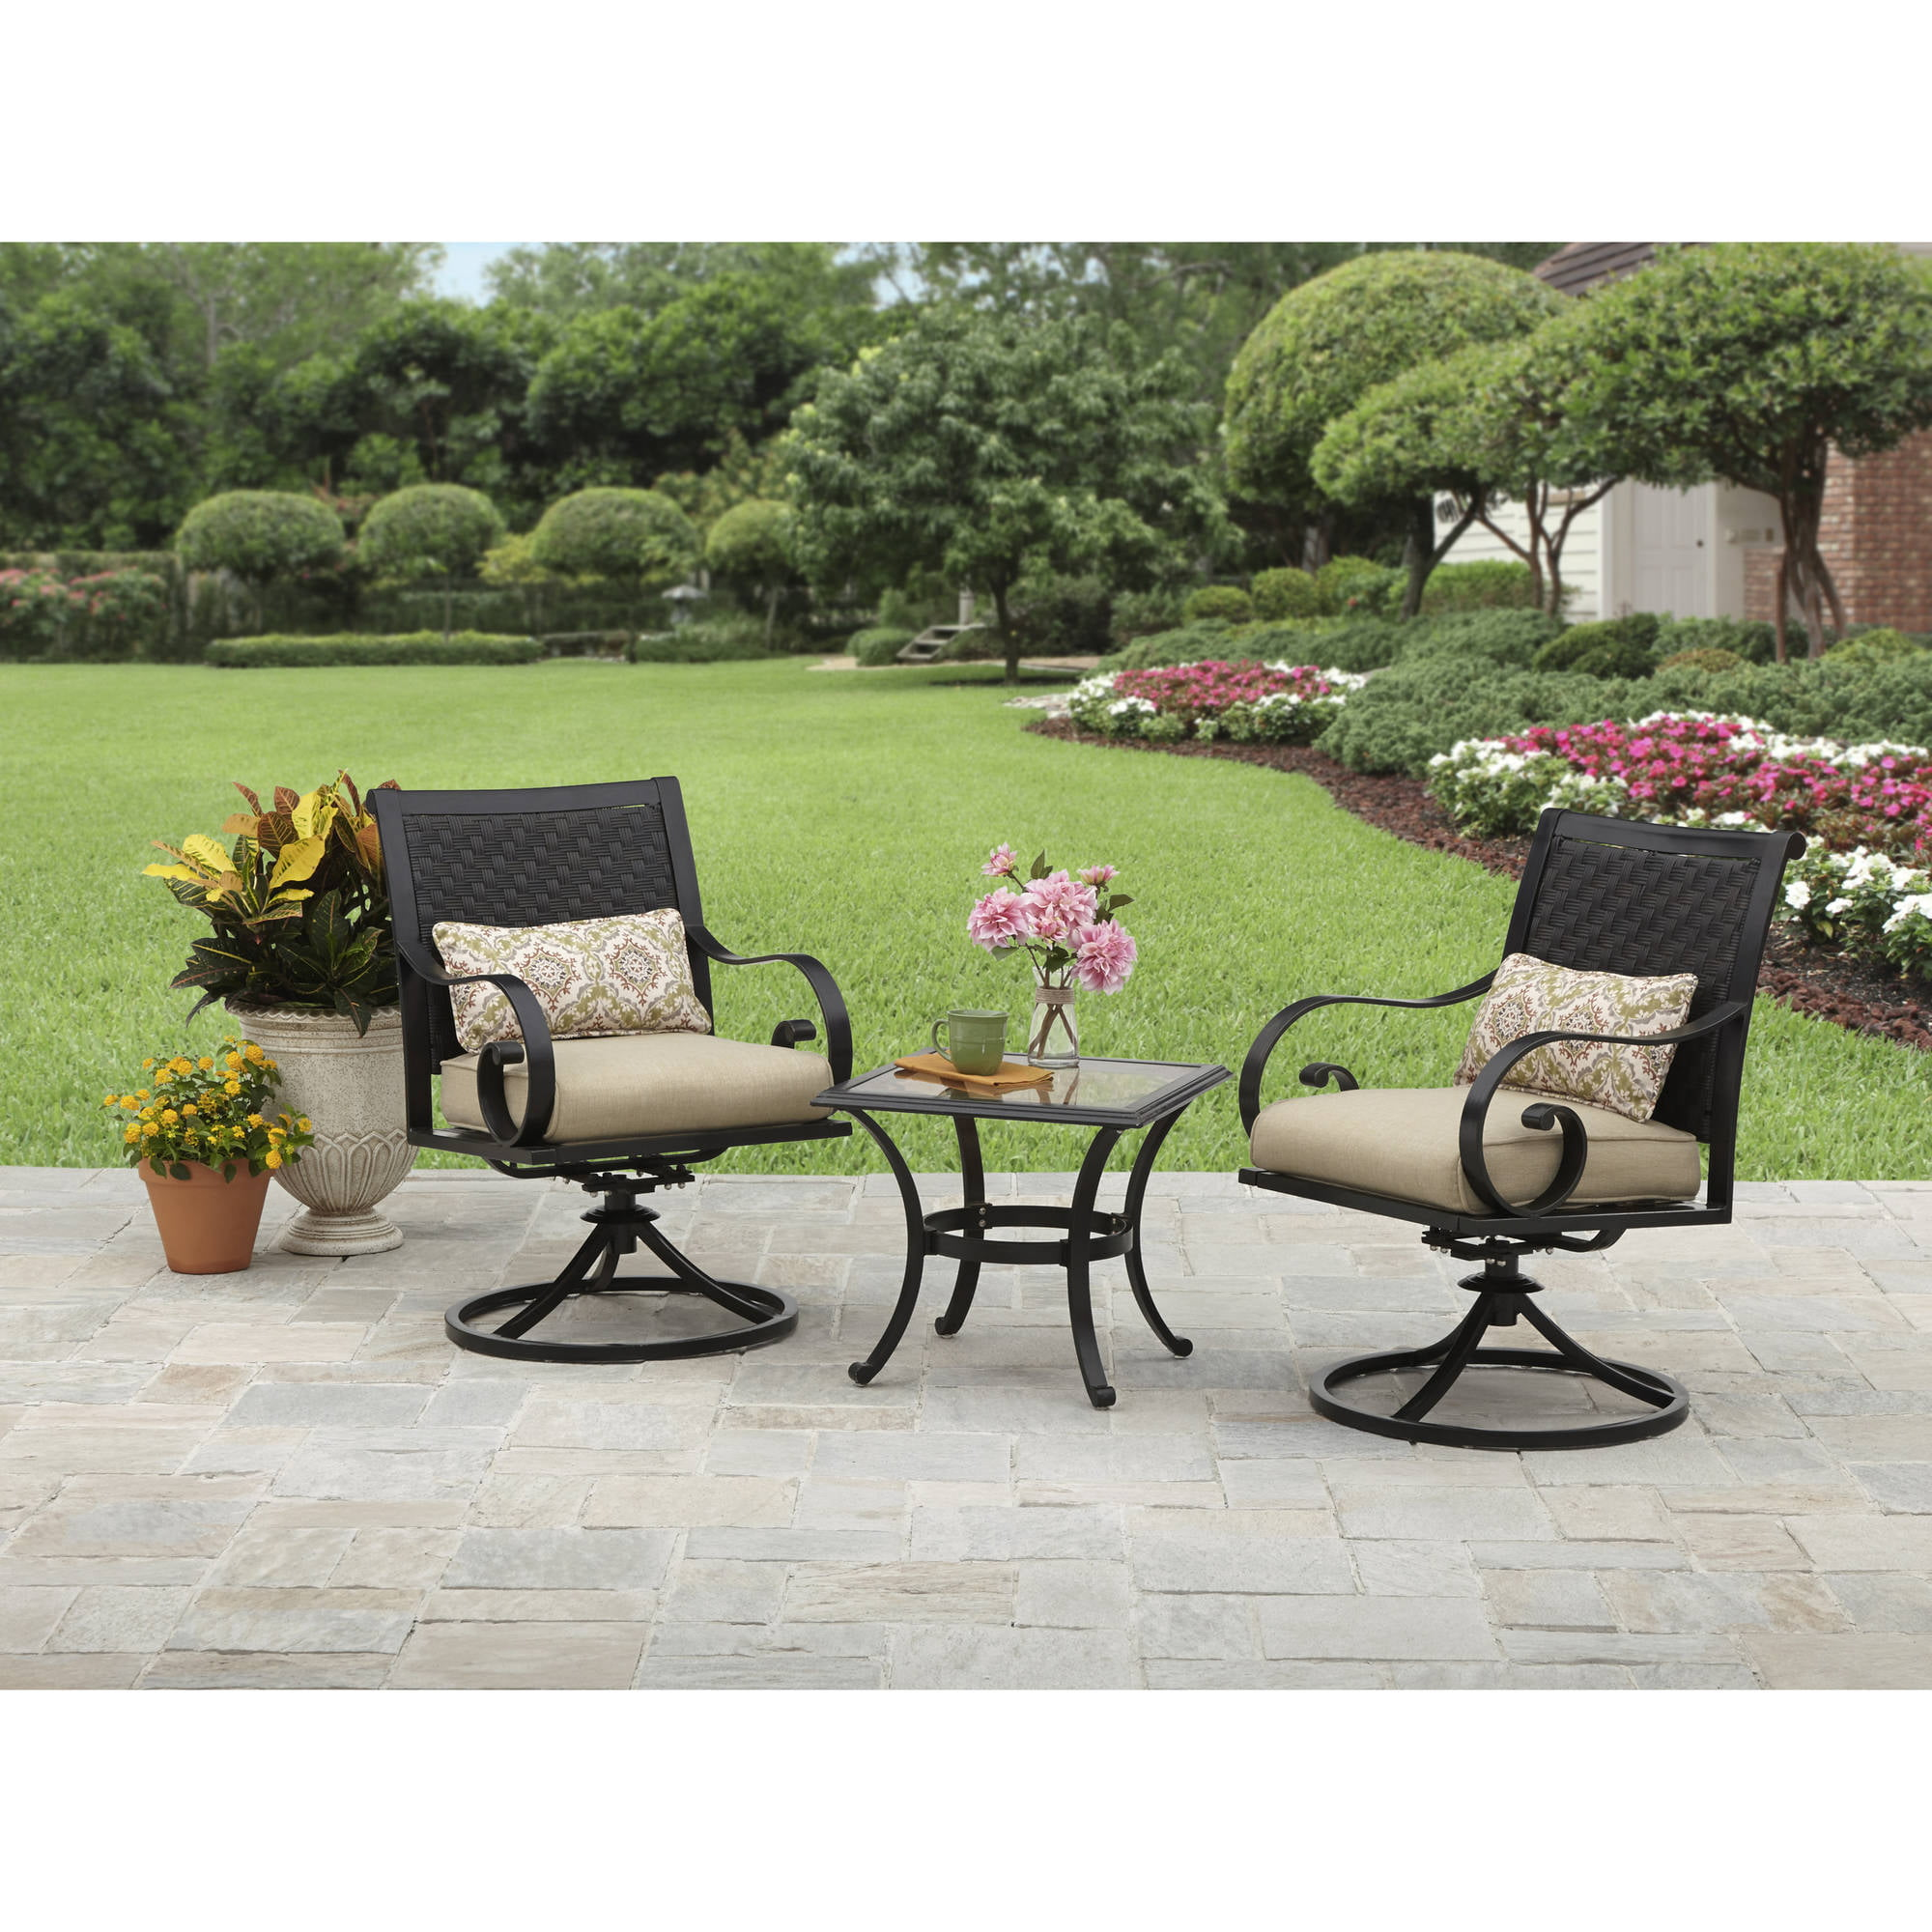 Better Homes and Gardens Englewood Heights II Aluminum 2-Piece Outdoor Bistro Set, Seats 2 by Generic